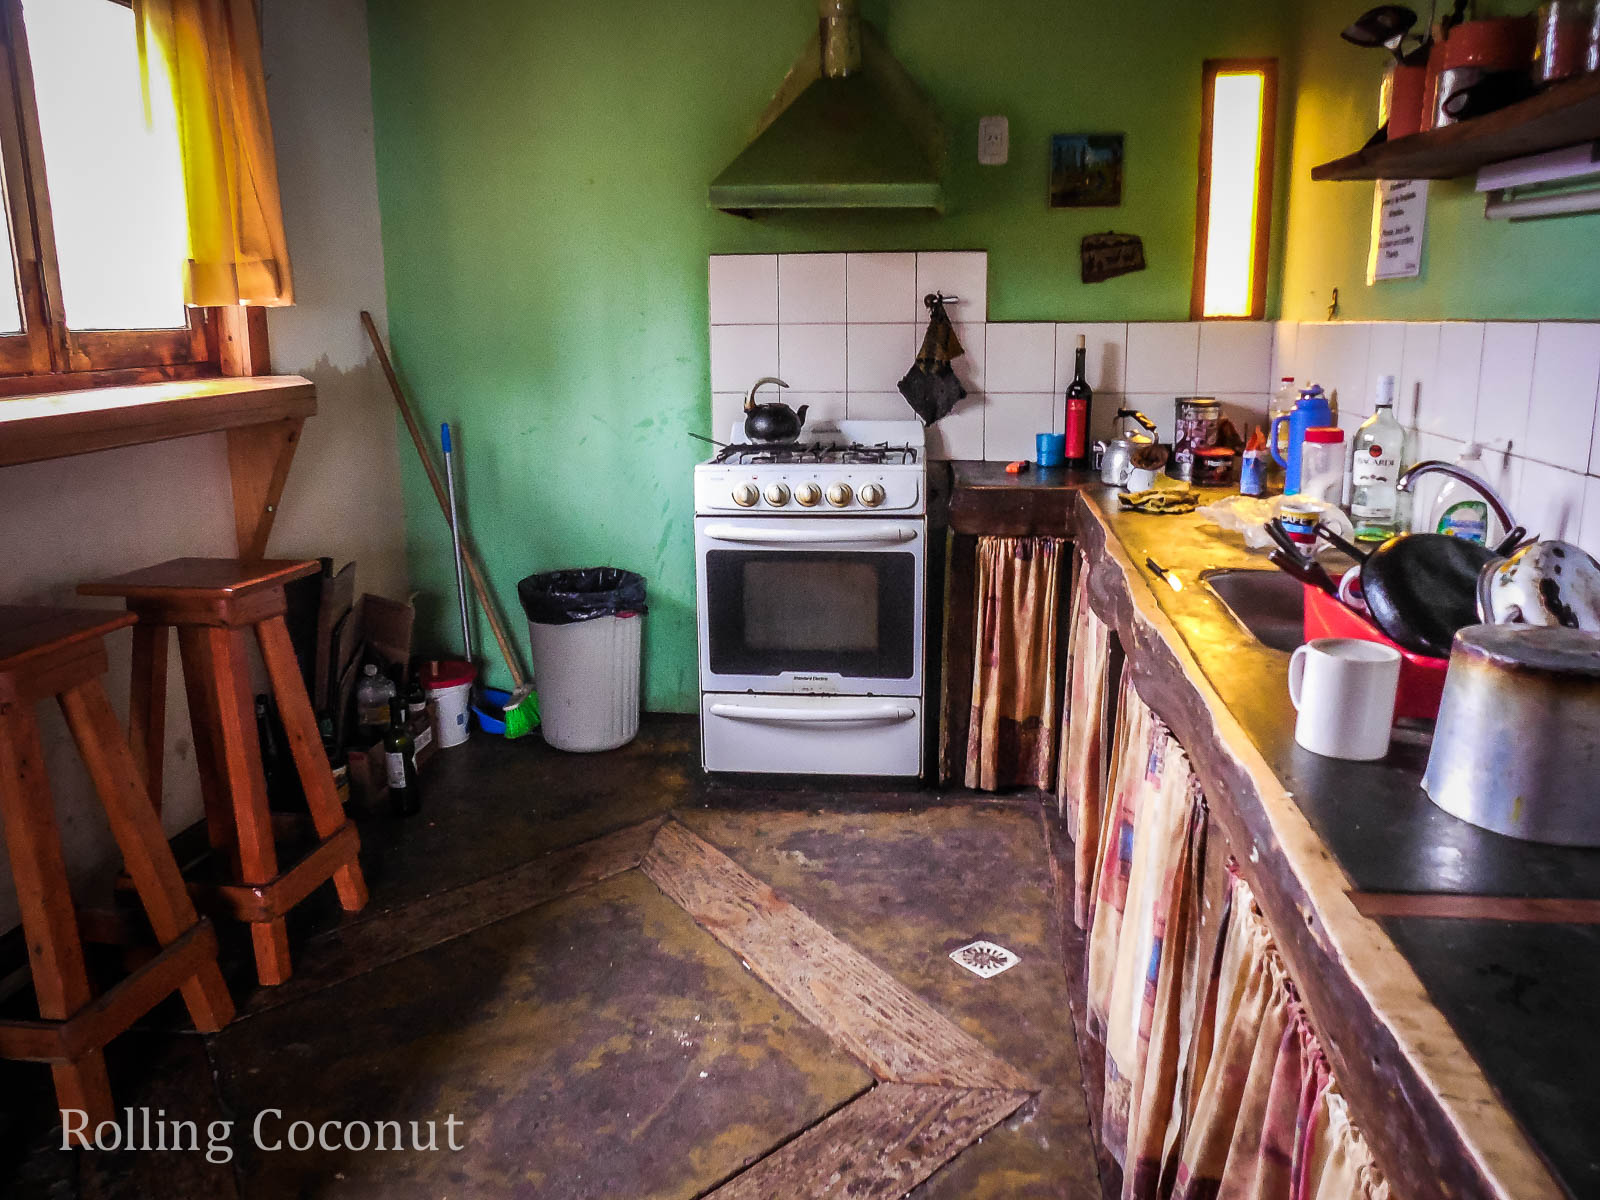 El Chalten Argentina Patagonia Refugio Chalten Kitchen ooaworld Rolling Coconut Photo Ooaworld